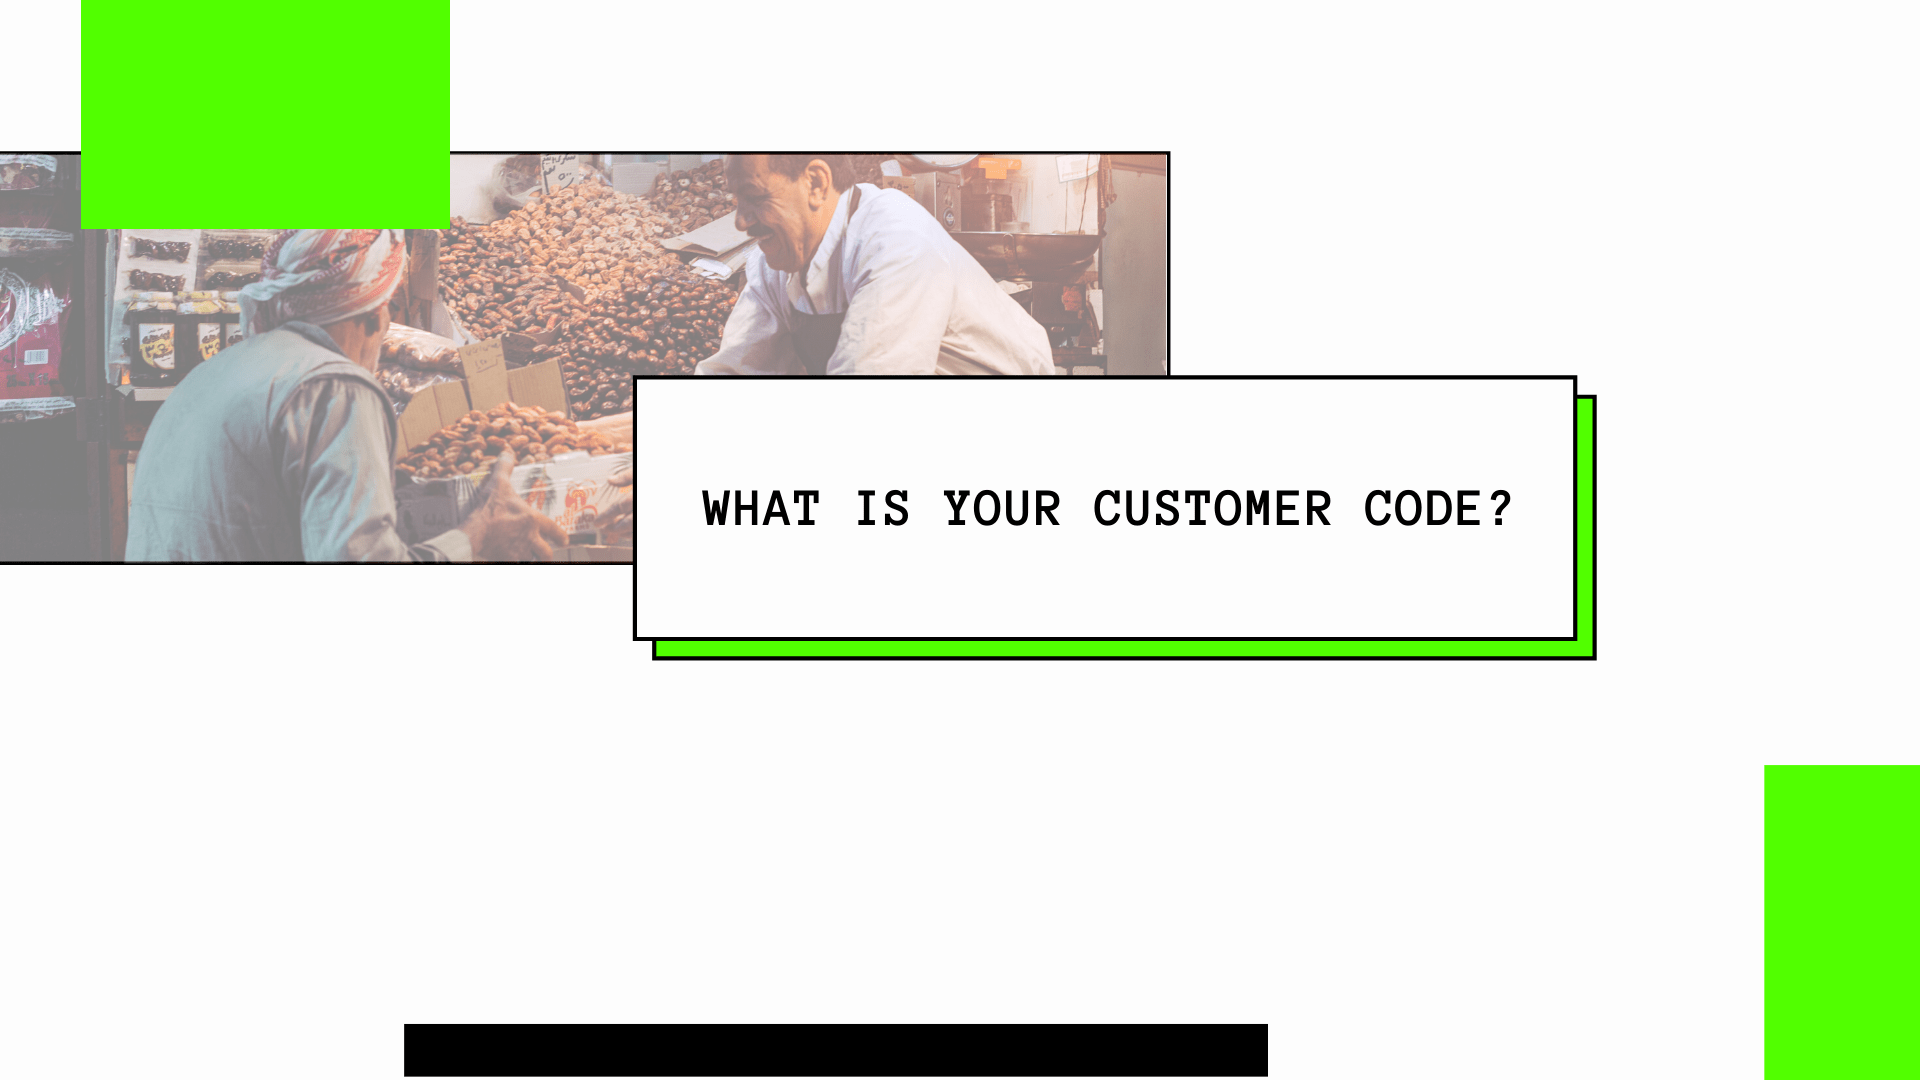 what is your customer code?